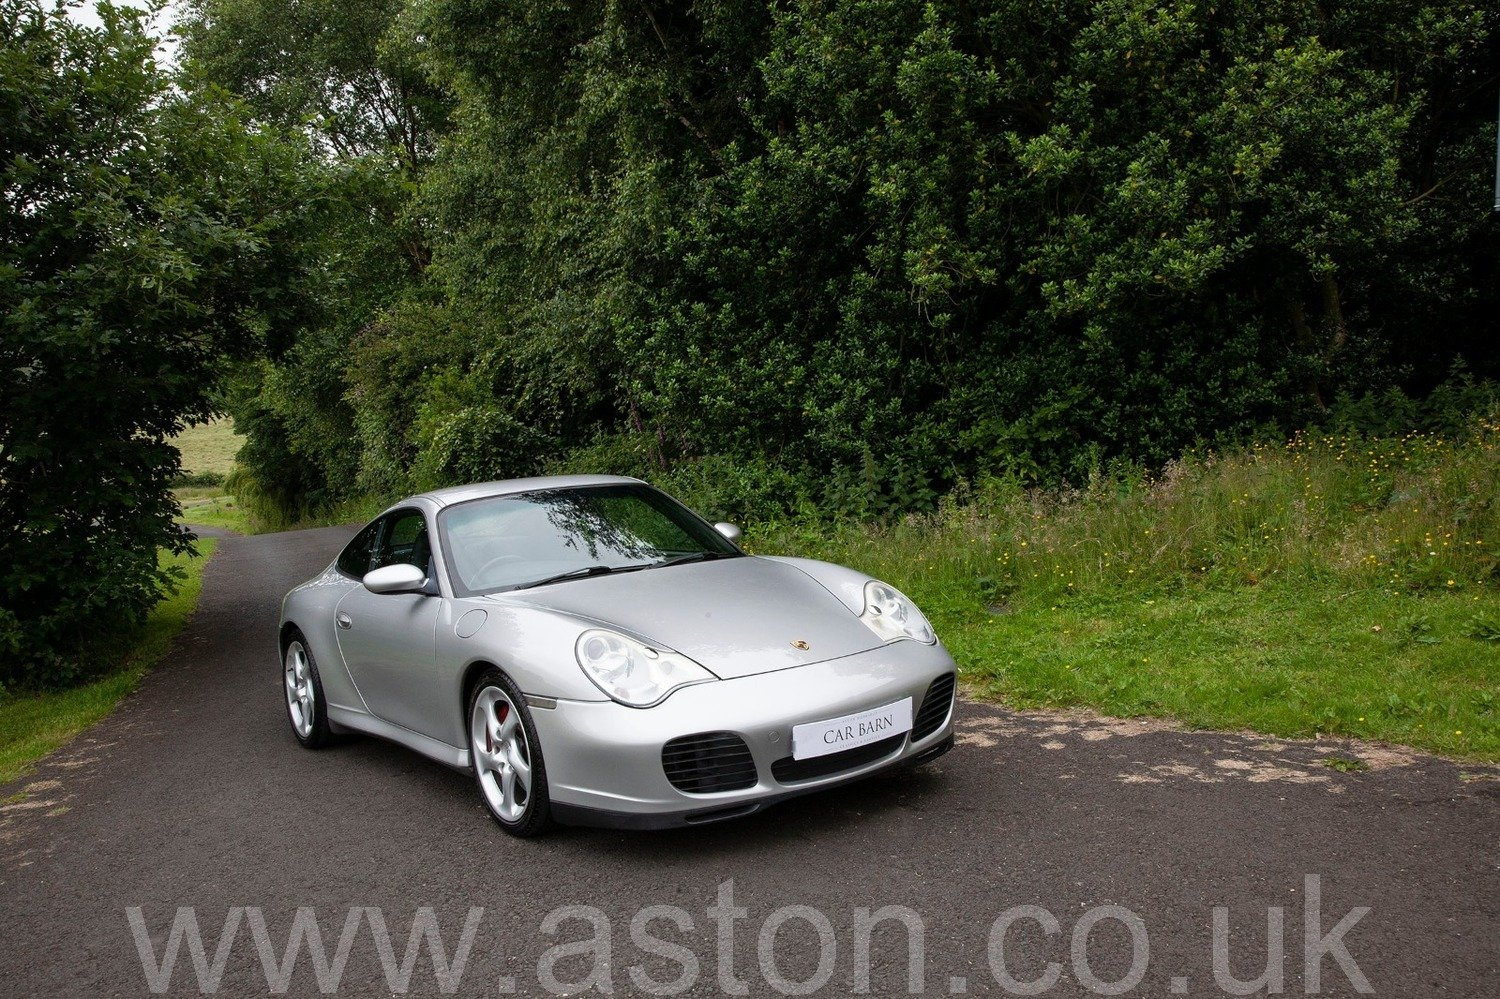 2003 Porsche 911 C4S Tiptronic For Sale (picture 2 of 6)